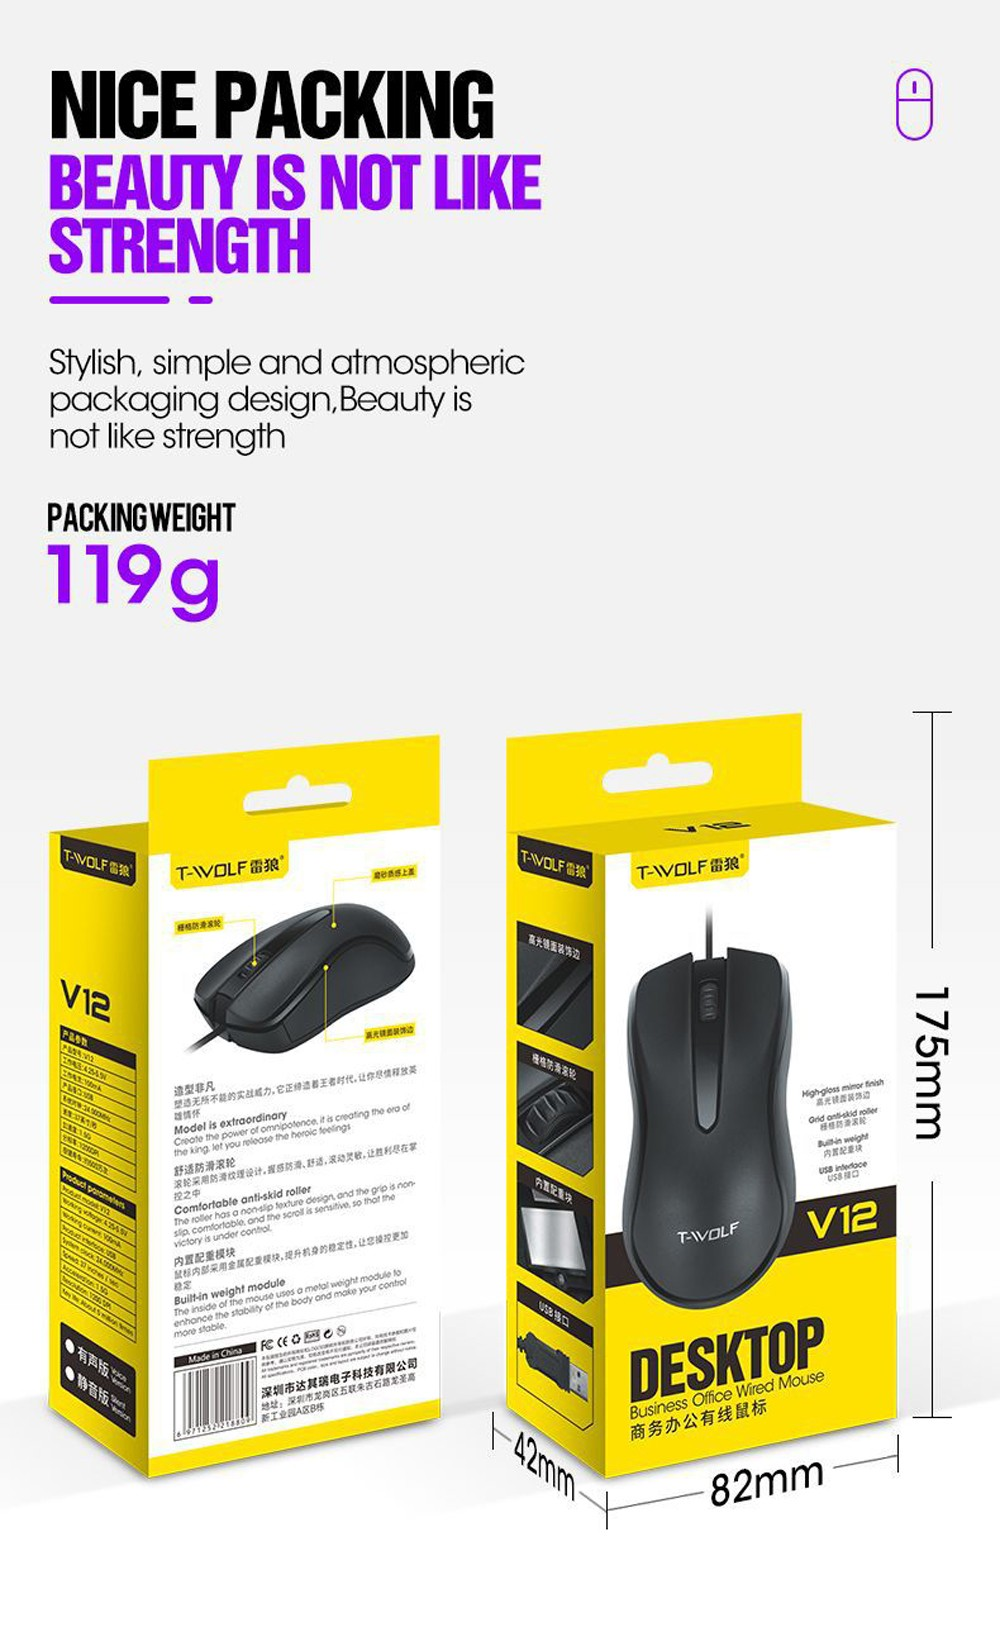 T-wolf V12 Wired USB Mouse - Black Silent Mouse 1.8M